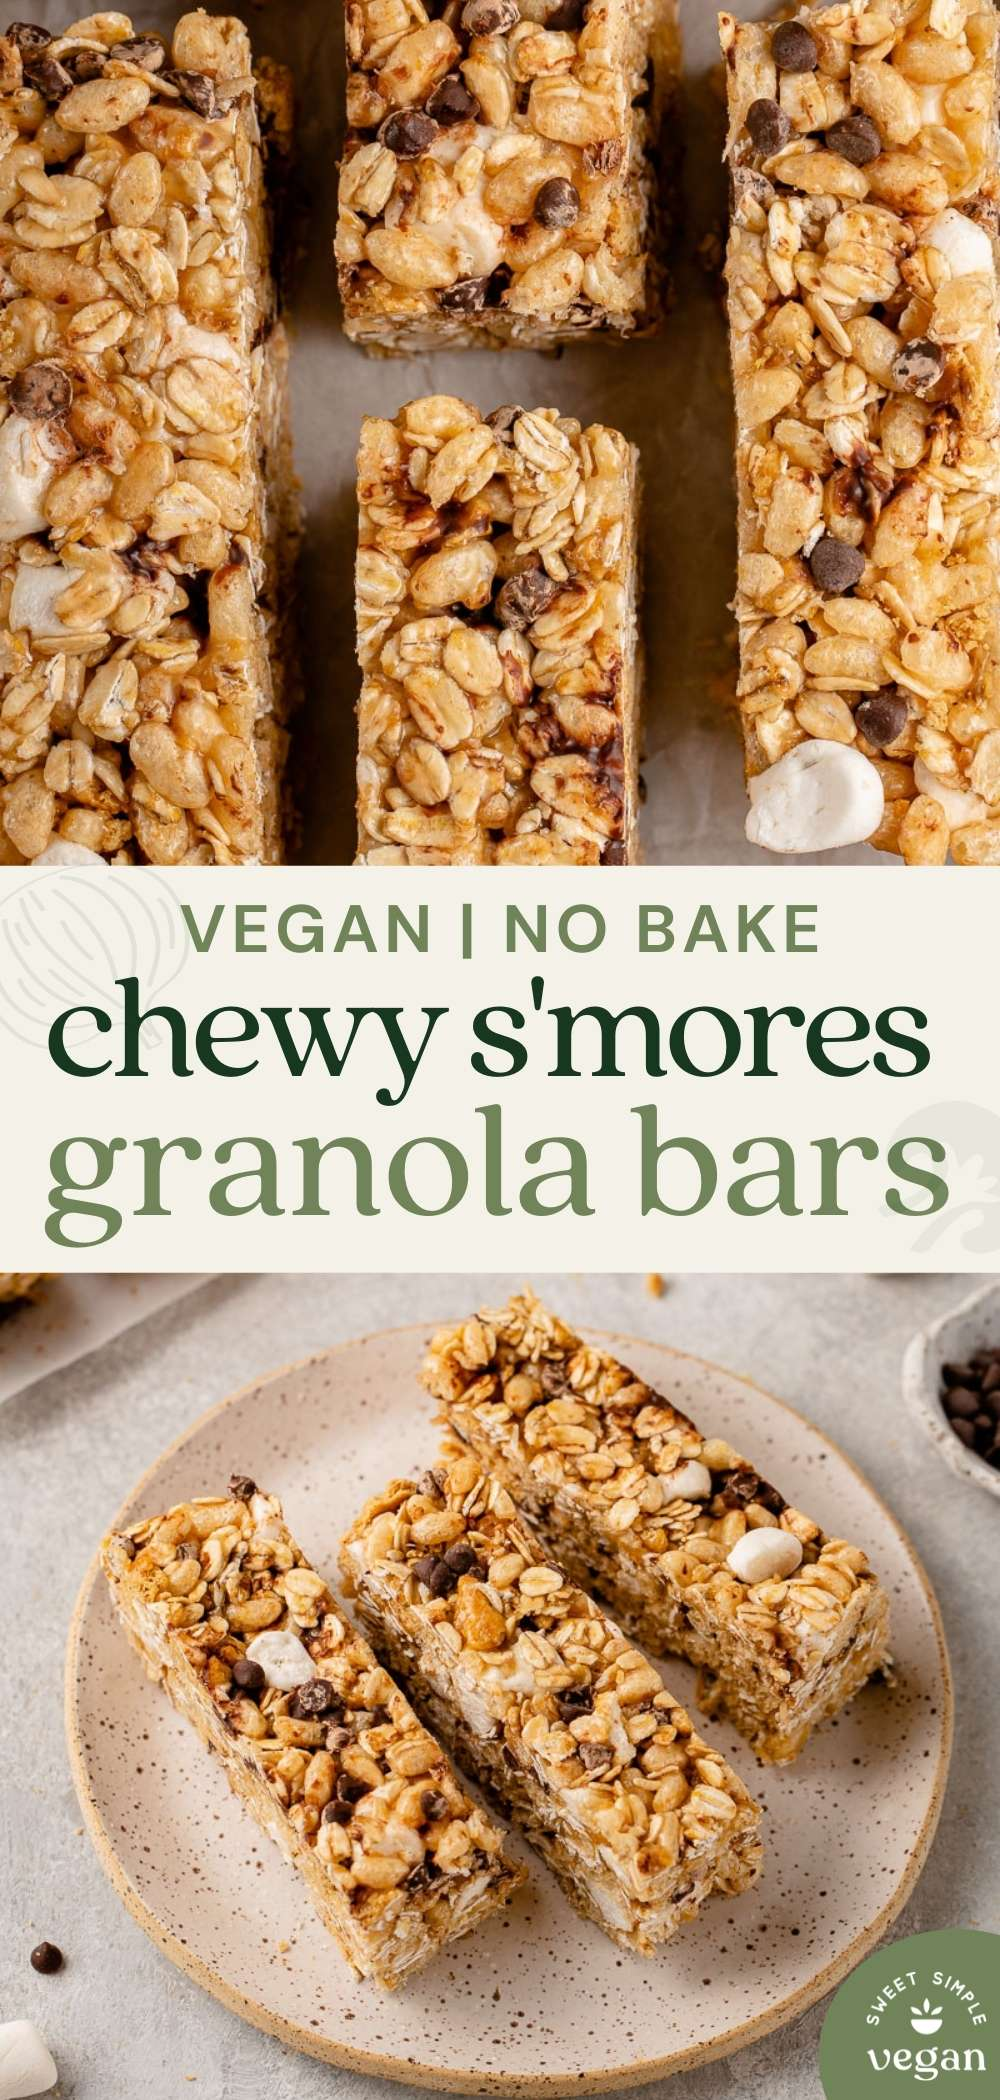 pinterest image of chewy s'mores granola bars with text